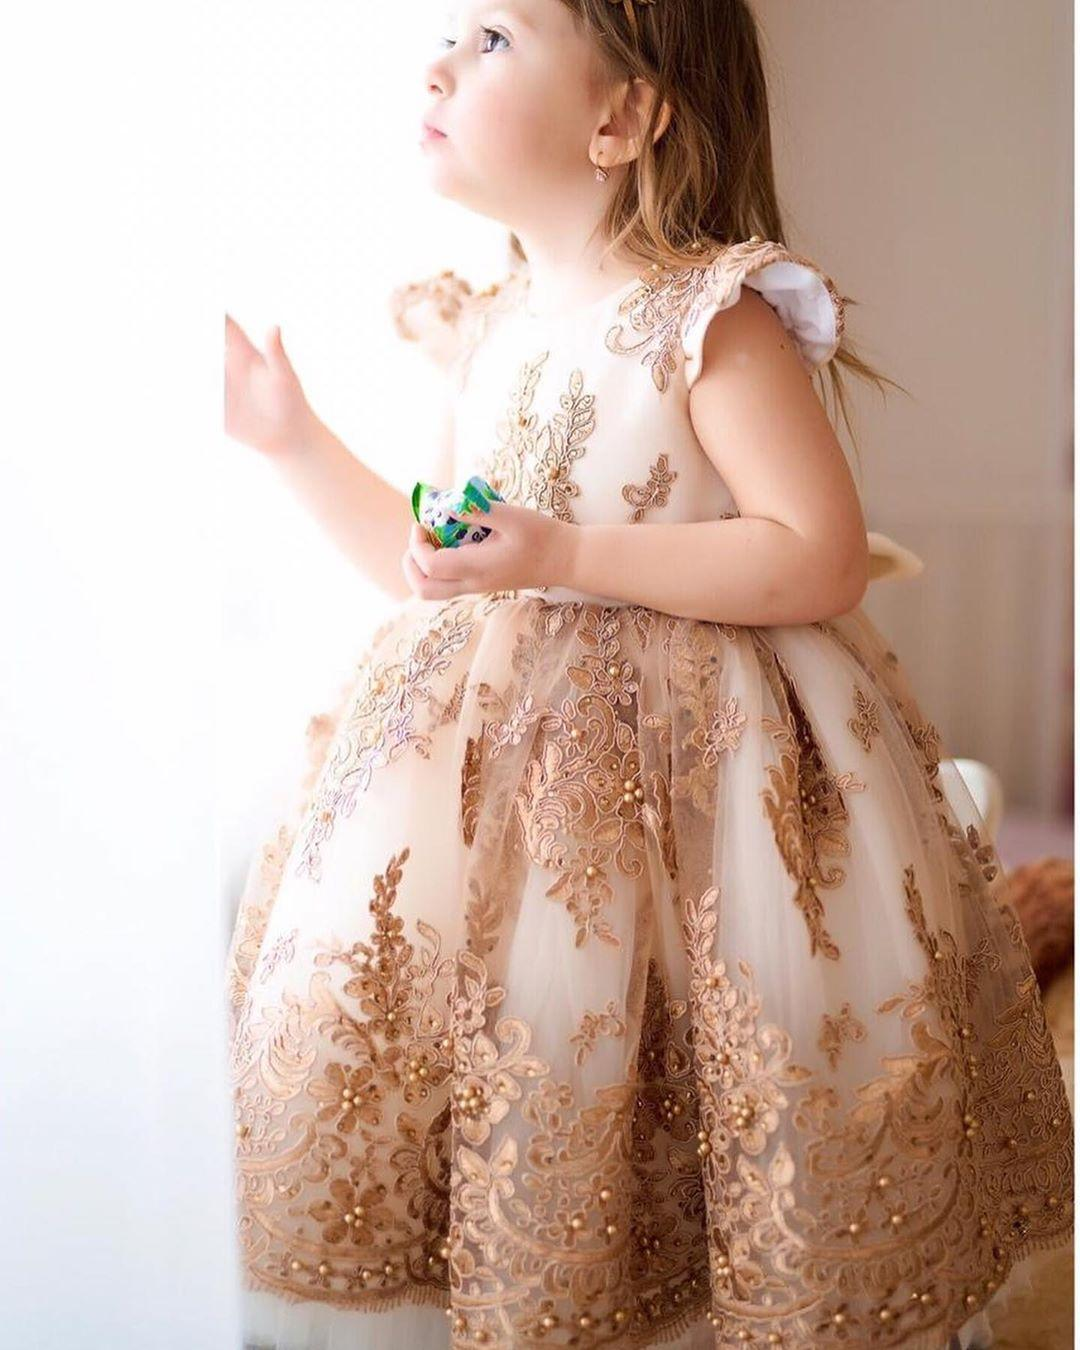 2020 Gold Lace Beaded Flower Girl Dresse Tea Length Ball Gown Little Girl Wedding Dresses Cheap Communion Pageant Dresses Gowns F311